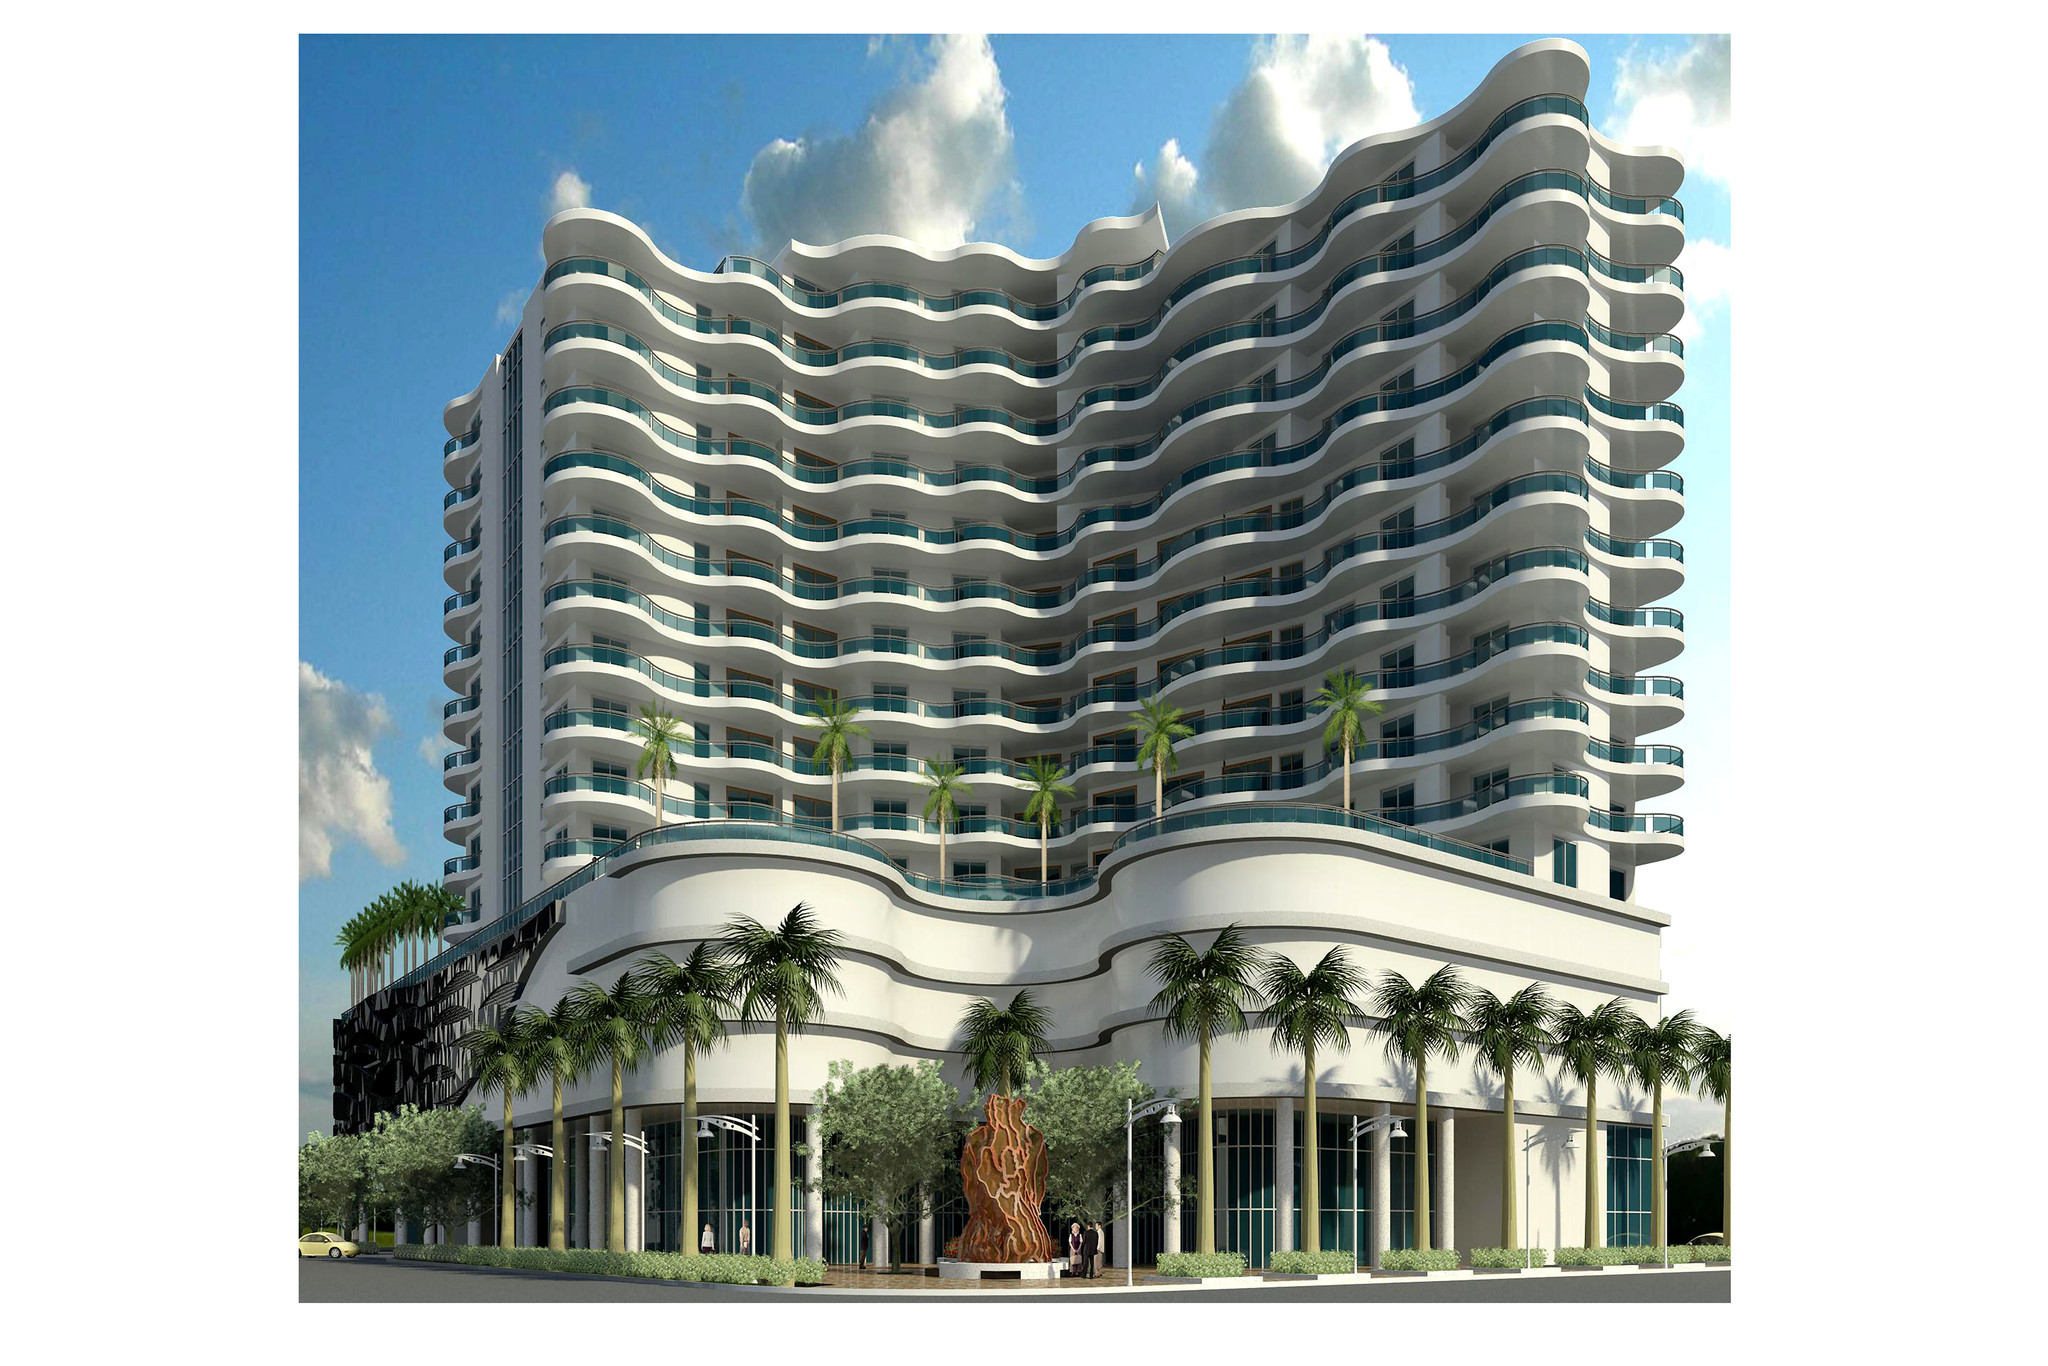 Downtown Hollywood Scores One Curvy Condo Tower Sun Sentinel